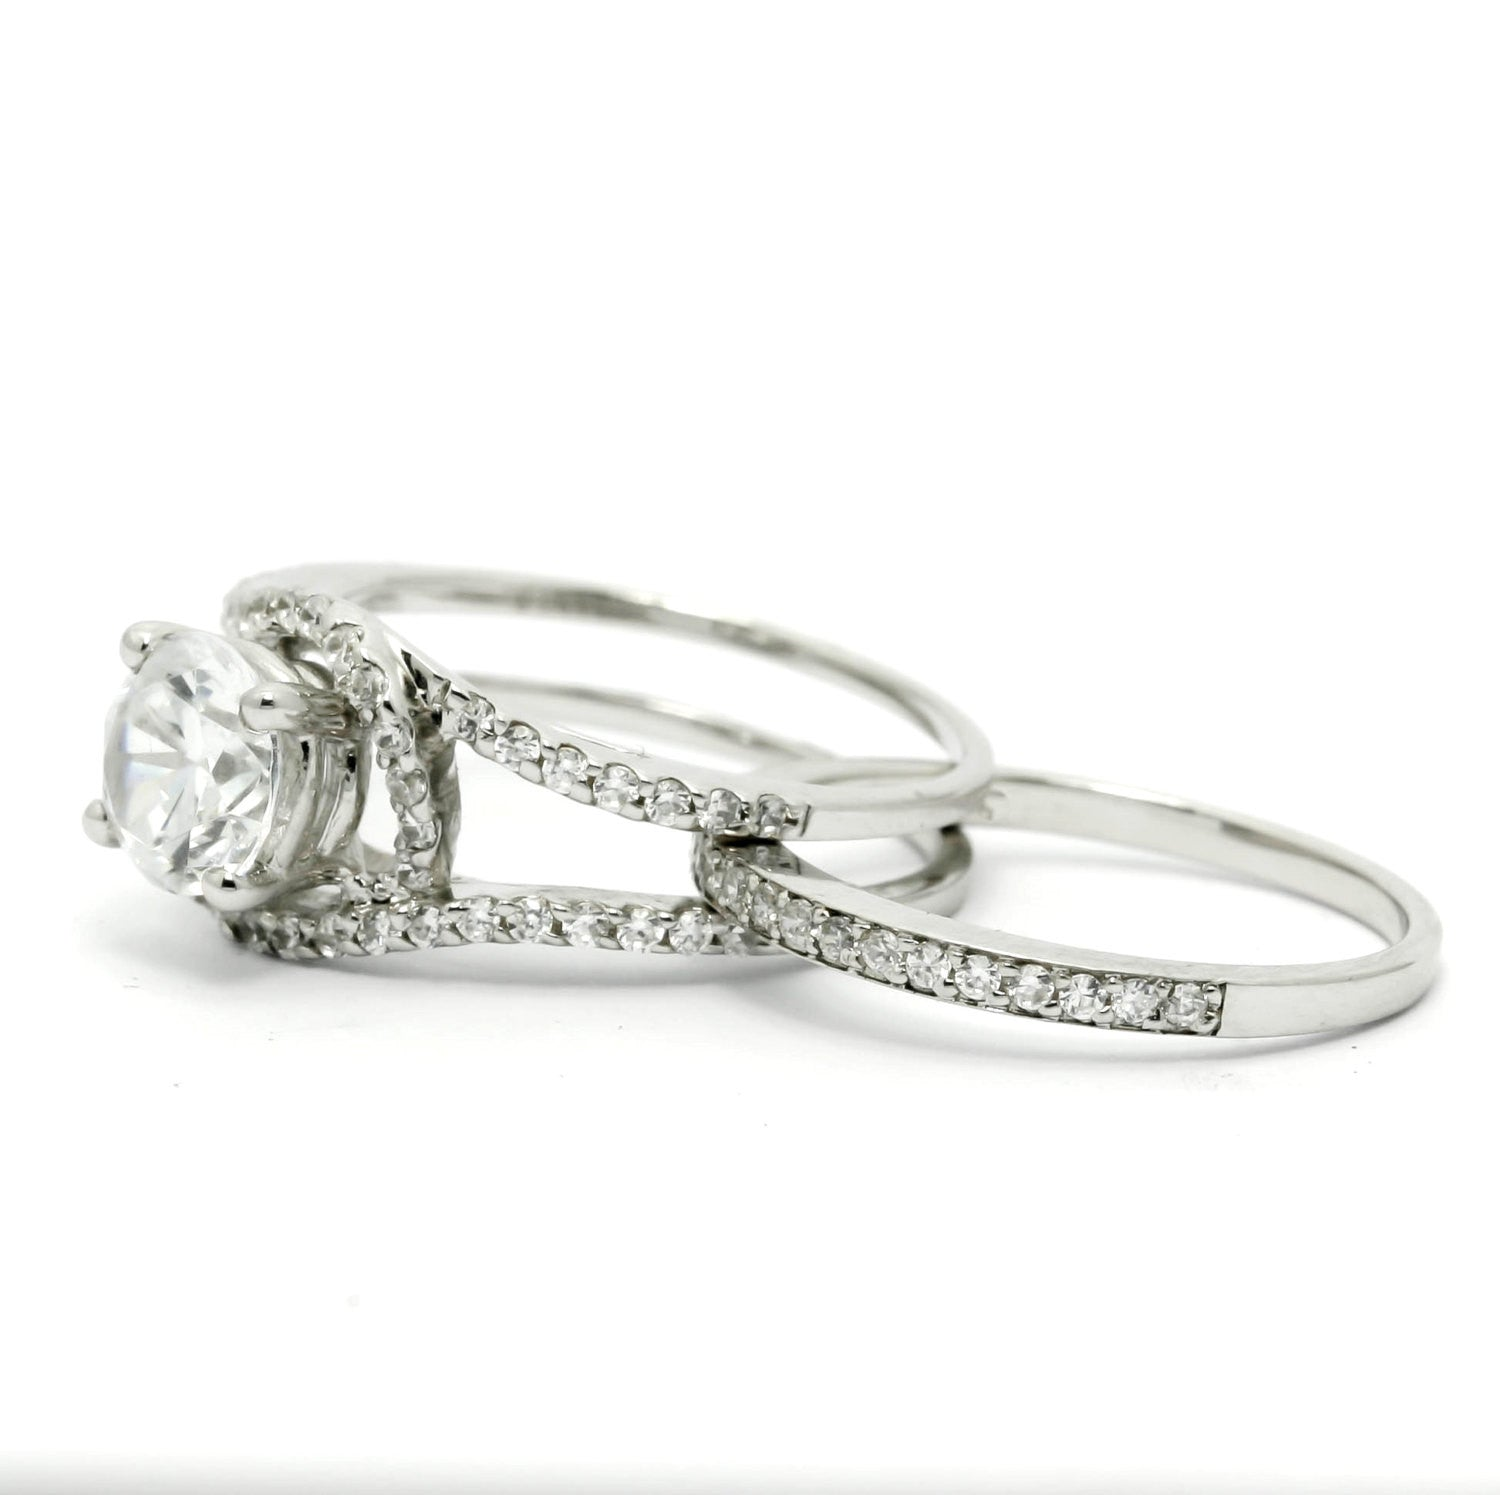 "Unique Halo And Split Shank Design, Diamond Engagement/Wedding Set, With 7 mm ""Forever Brilliant"" Moissanite Anniversary Ring - FBY11580"